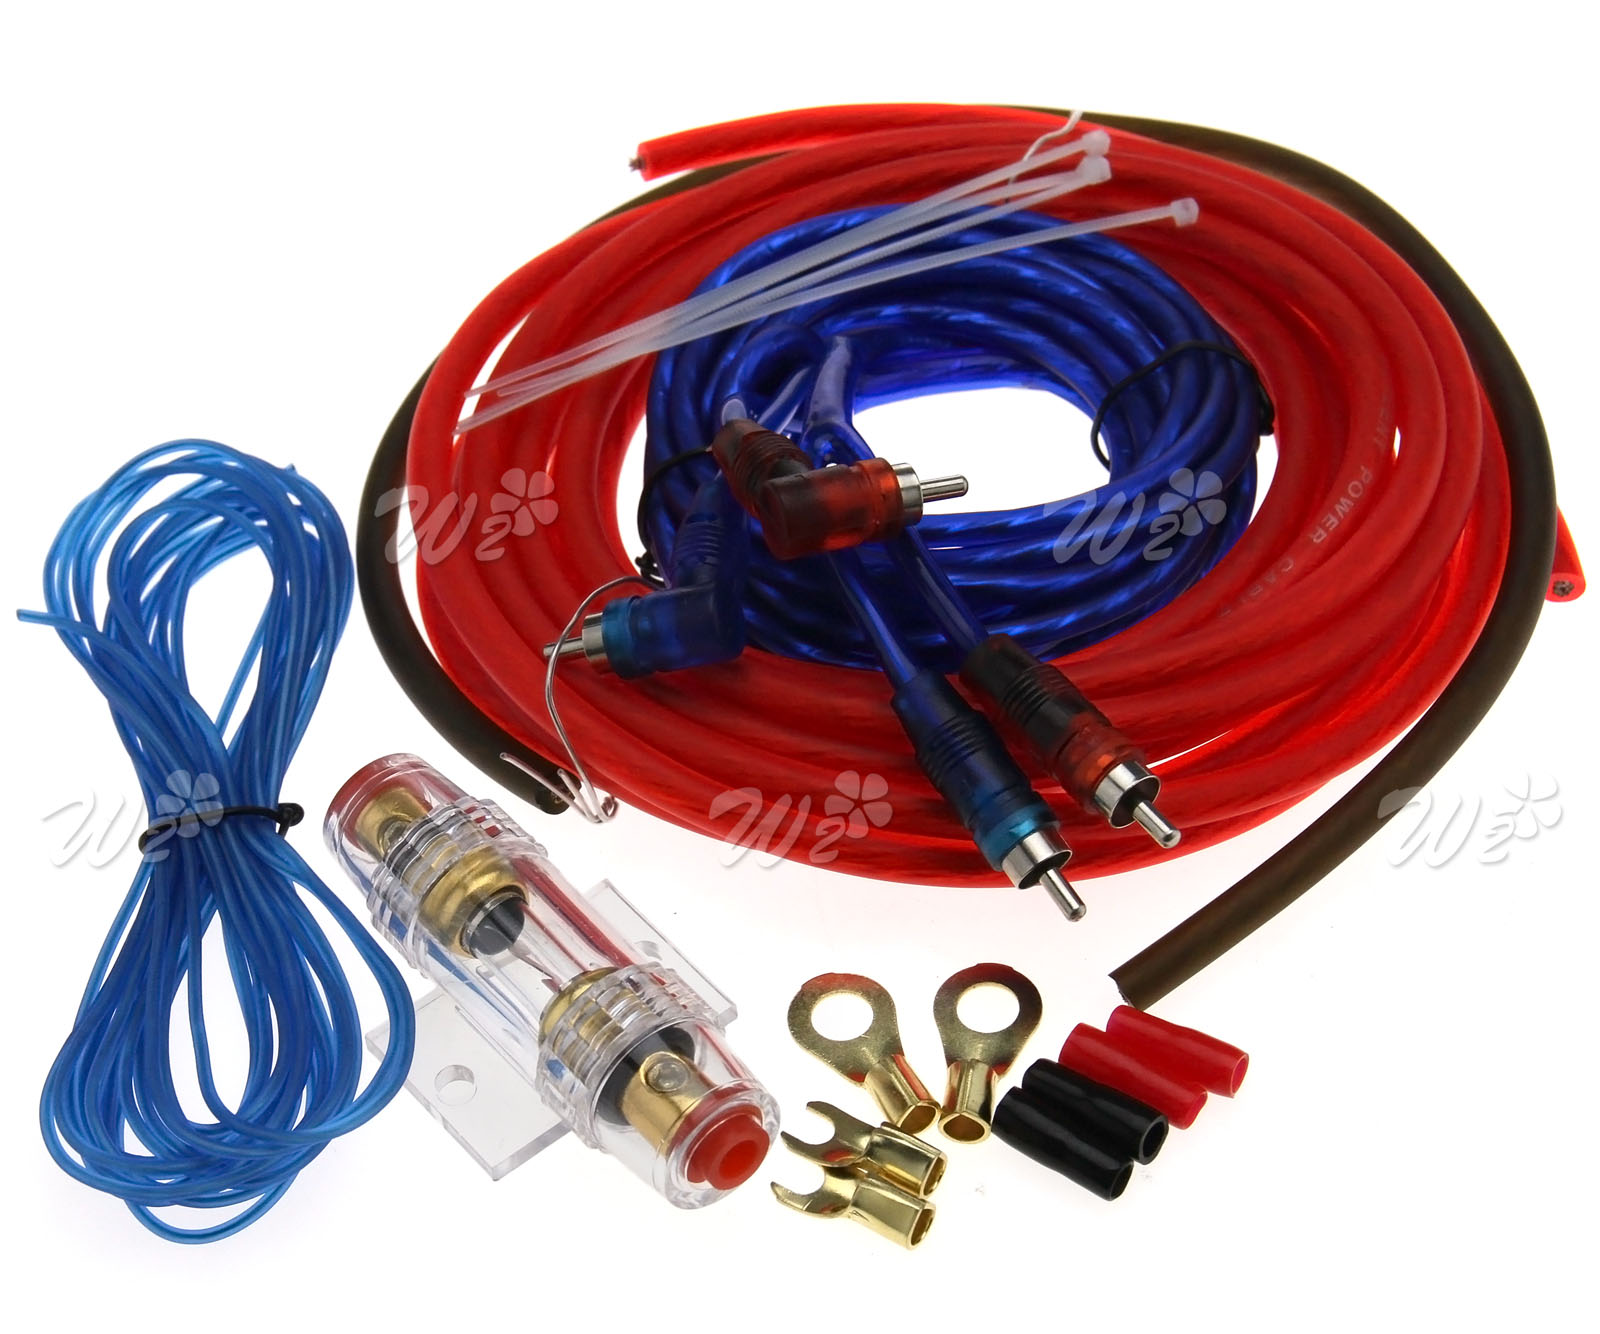 10 Gauge Amp Wiring Kit Solutions 1500w Car Audio Rca Power Cable Subwoofer Amplifier Kits Awg Terminals 400w 40